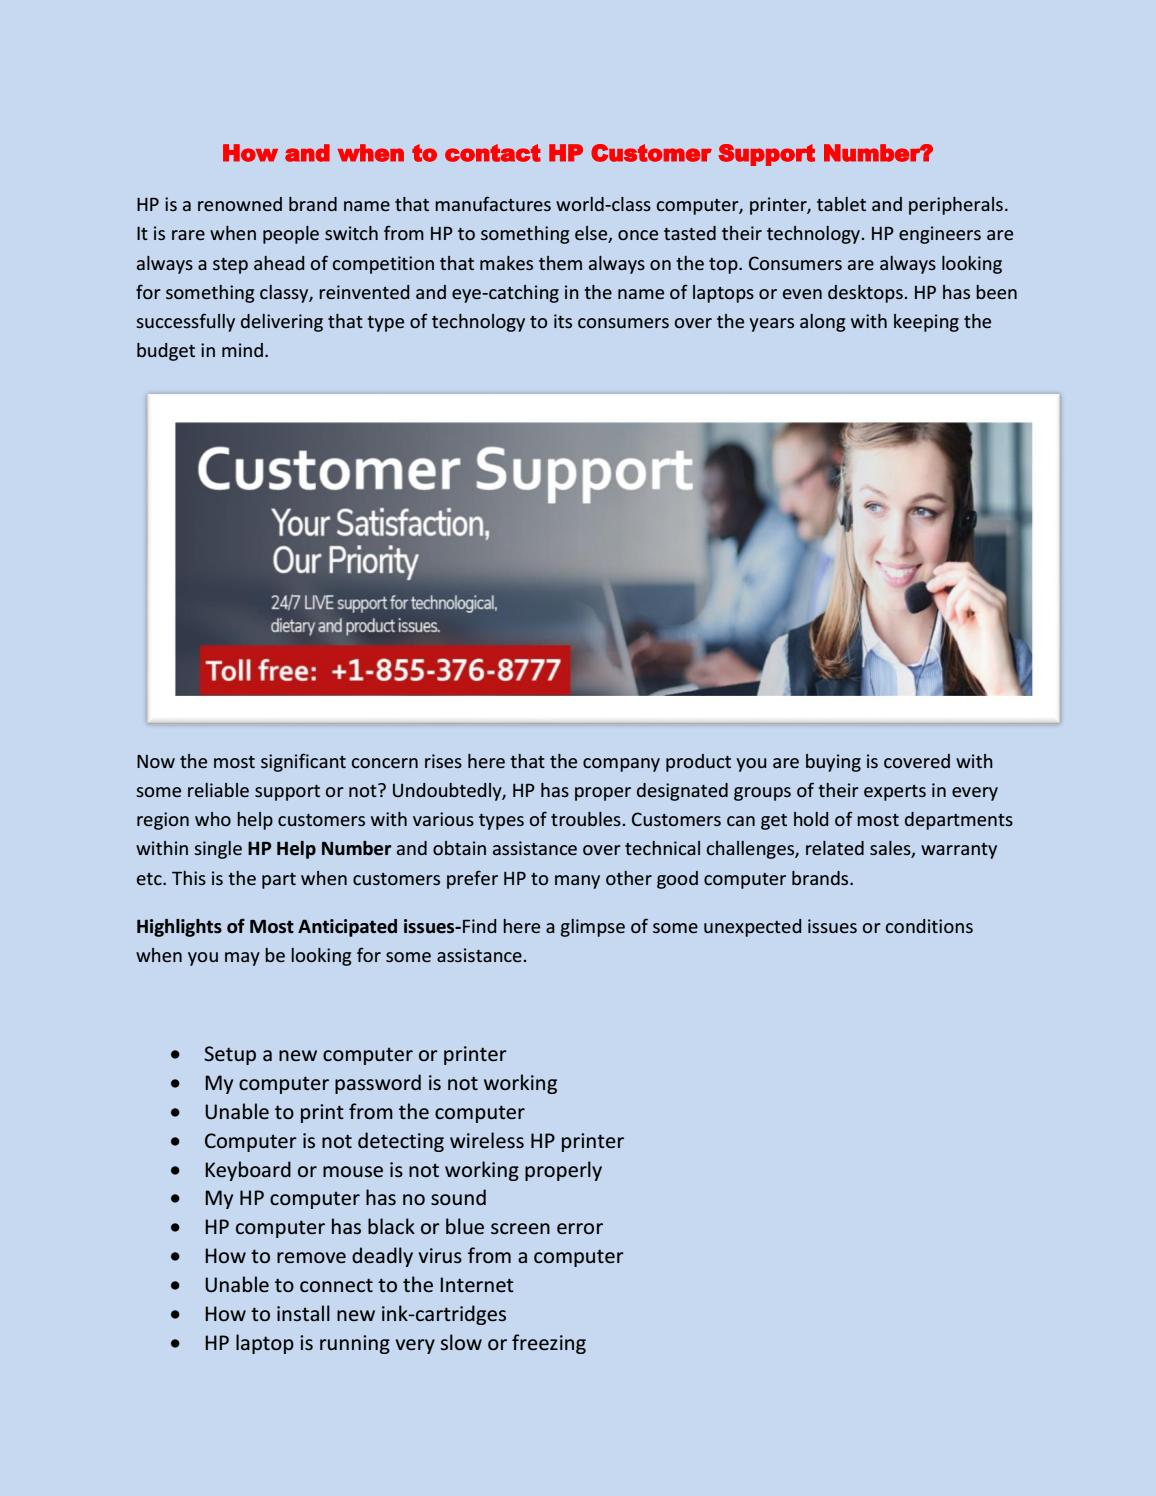 How and when to contact HP Customer Support Number? by Alina Frank